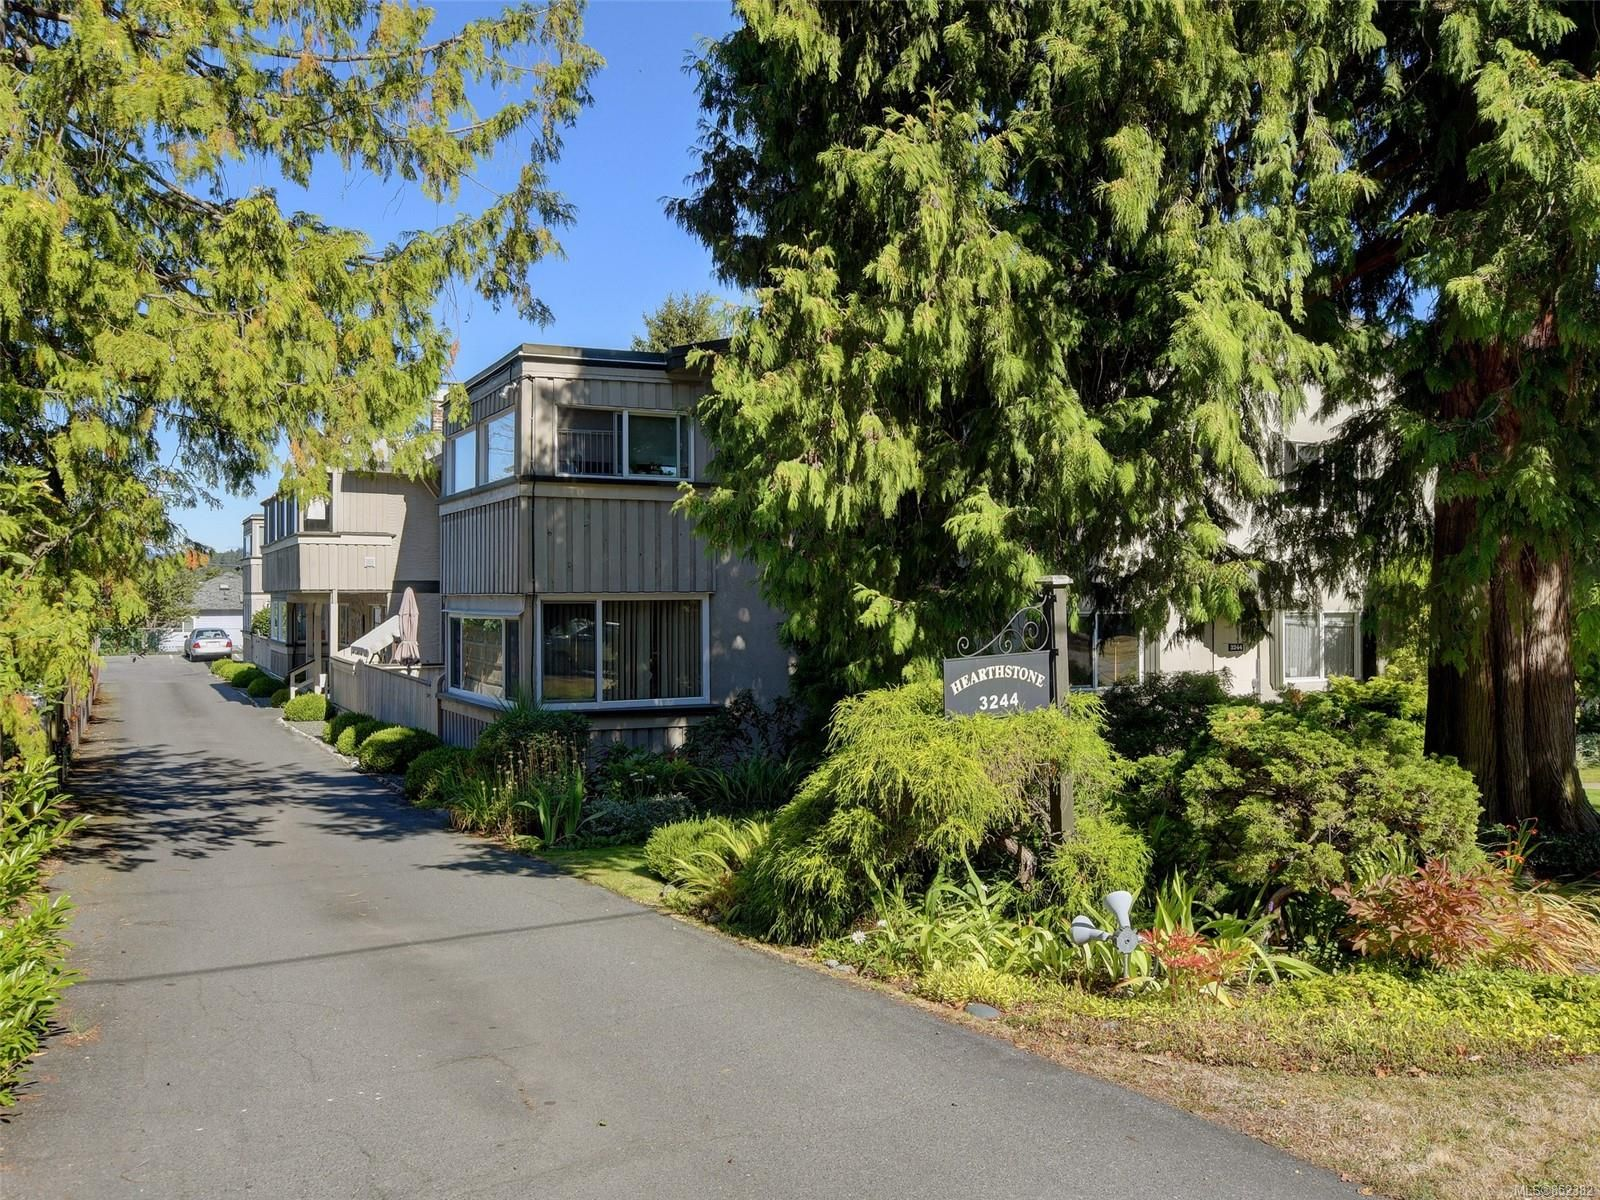 Main Photo: 105 3244 Seaton St in : SW Tillicum Condo for sale (Saanich West)  : MLS®# 852382